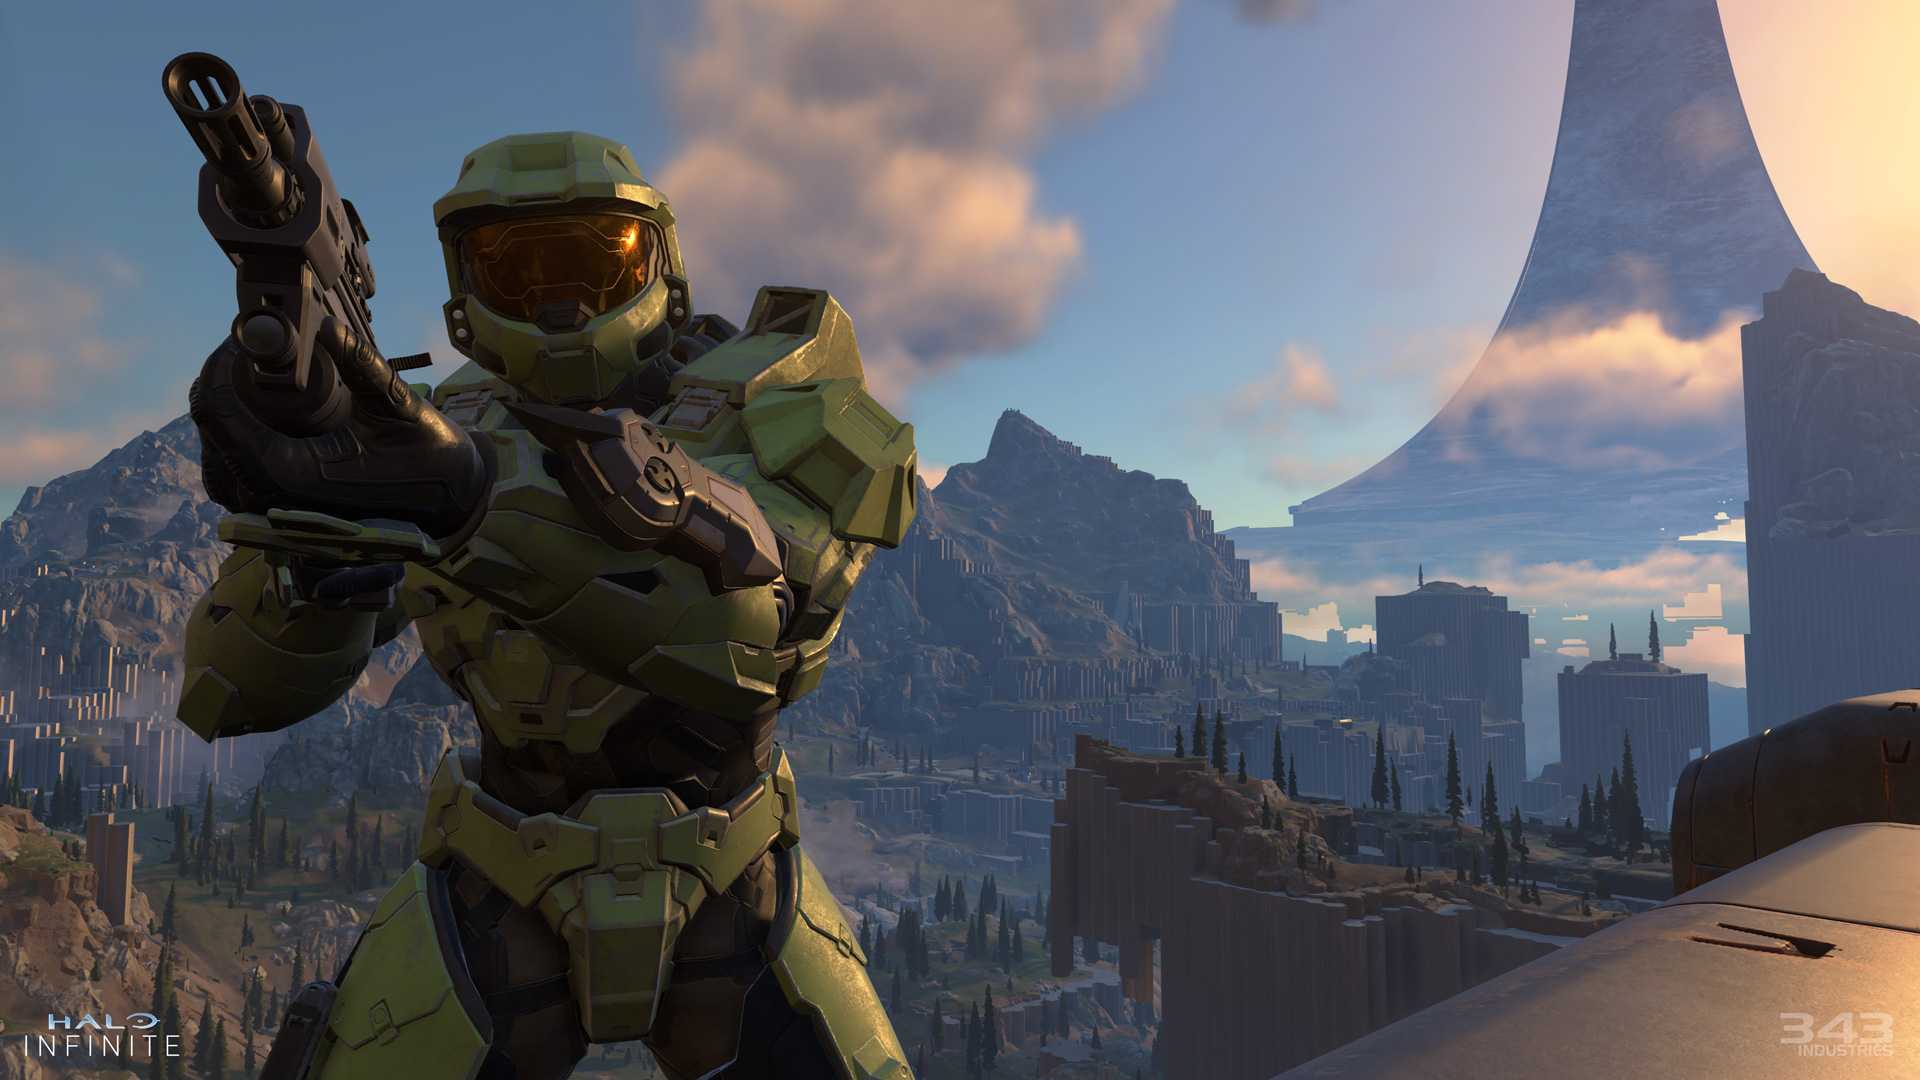 Halo Infinite isn't quite open-world but you can backtrack through it screenshot